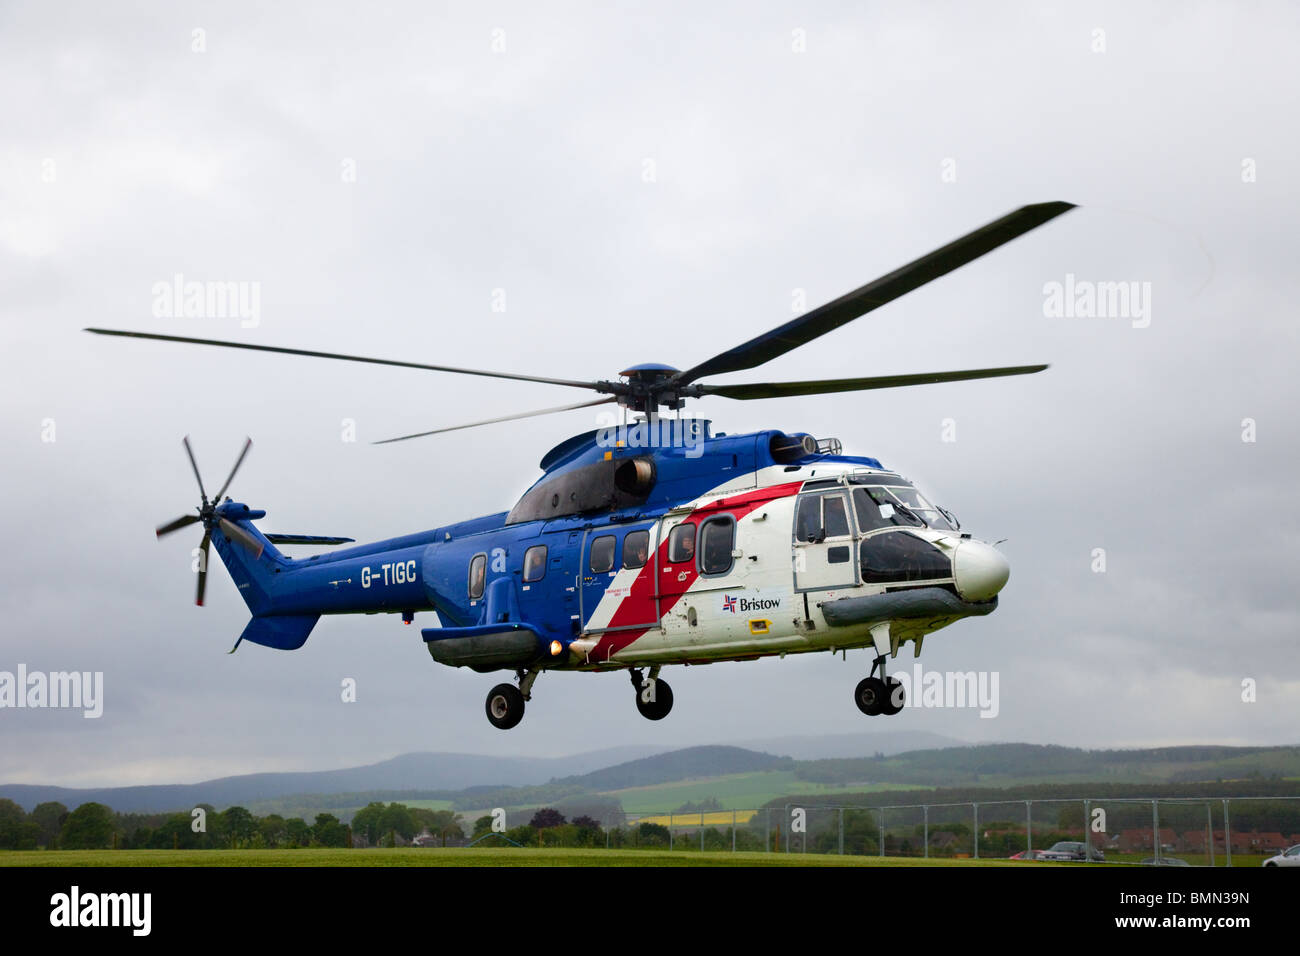 Flying Bristow Helicopter_ Eurocopter EC225 Aircraft, Aberdeenshire, Scotland, UK - Stock Image